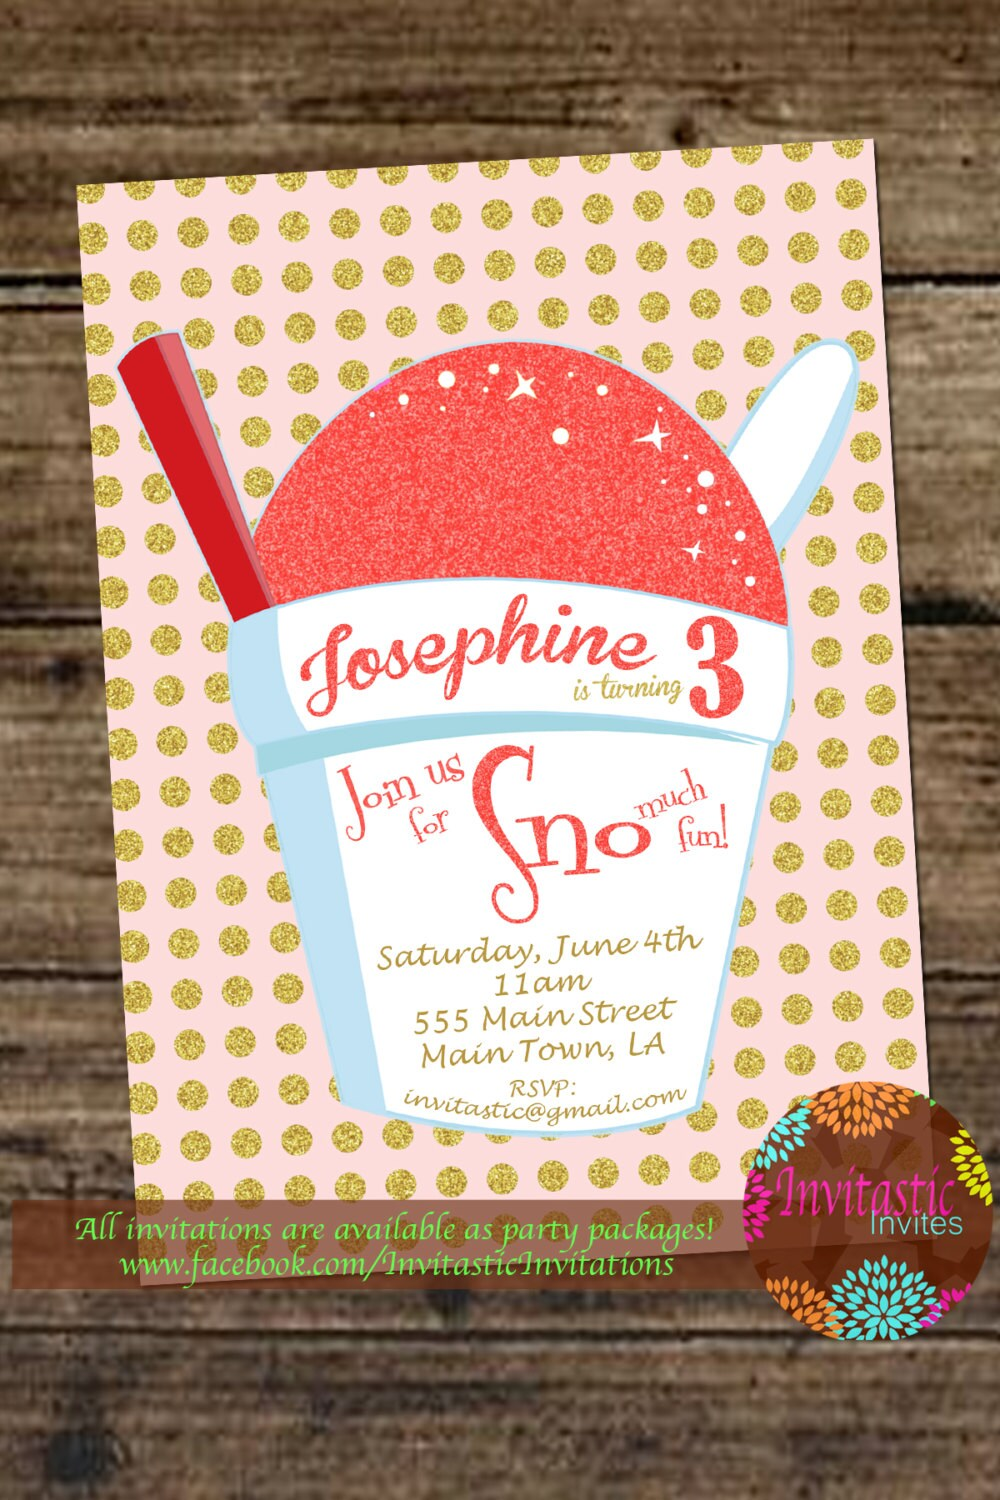 Snoball Birthday Invitation New Orleans Sno Ball Snow Cone